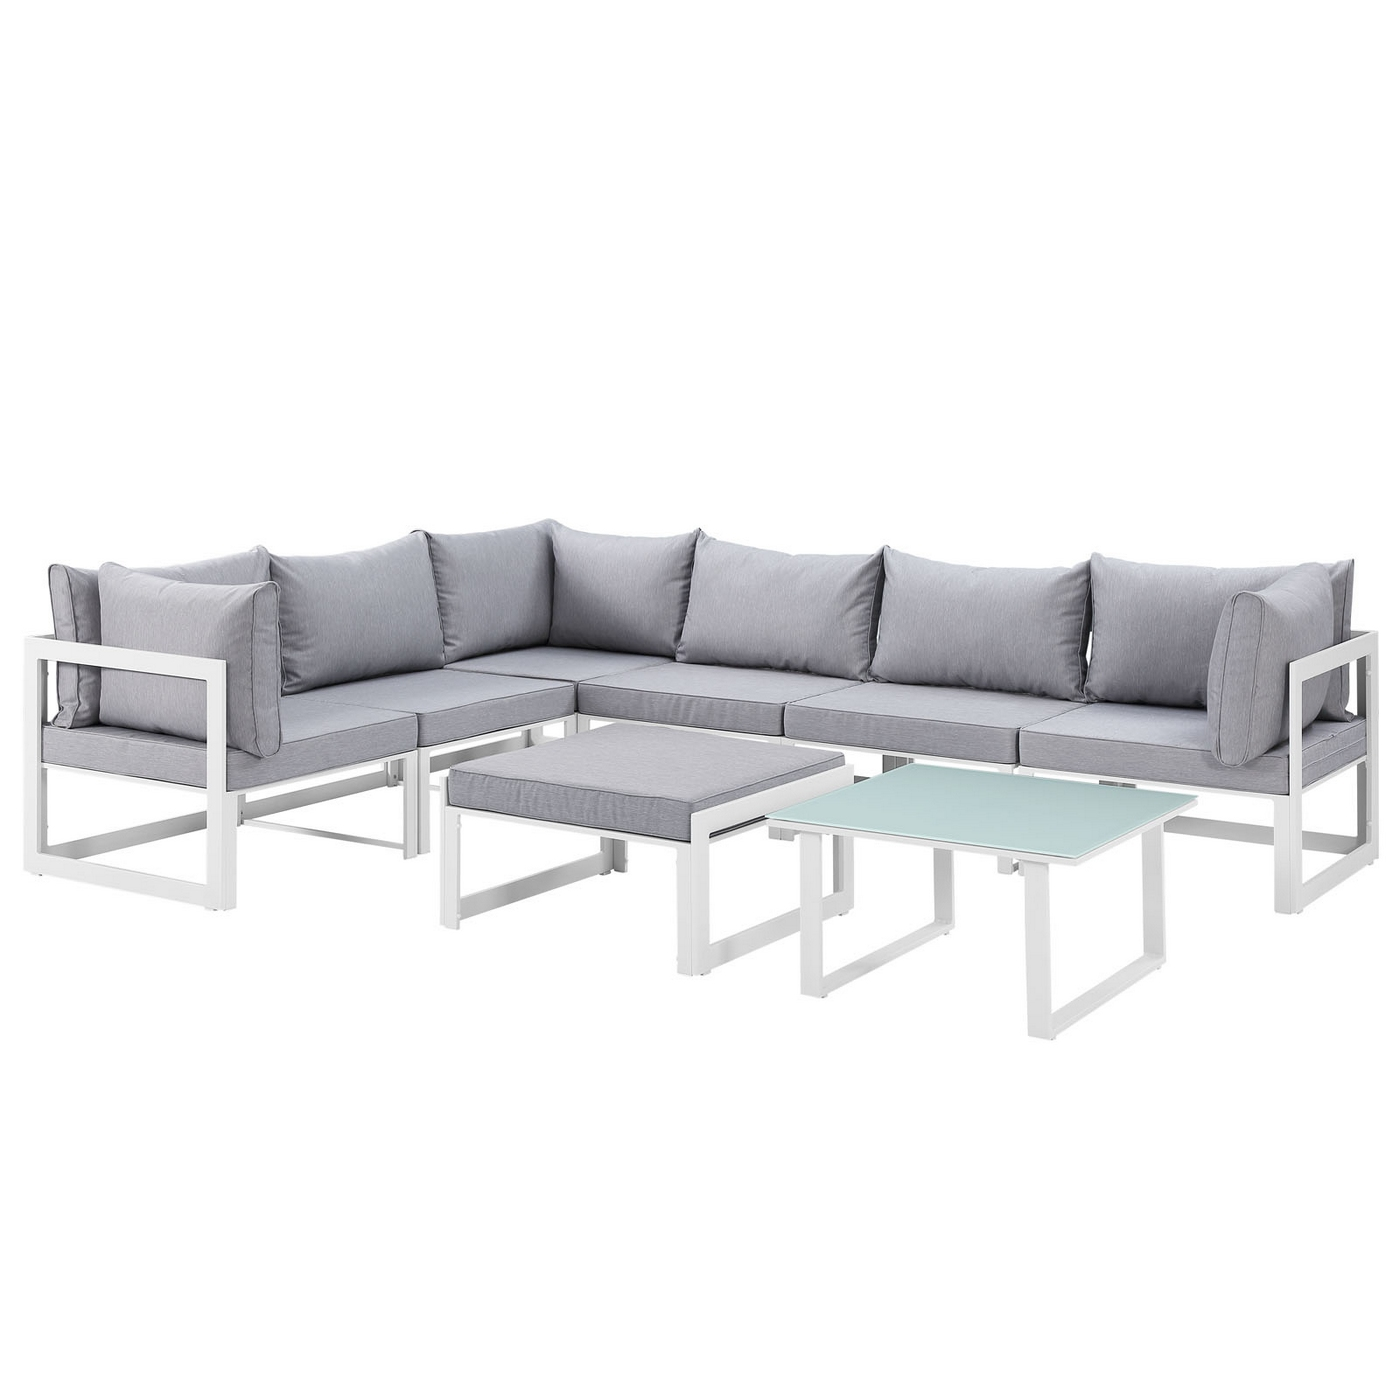 Fortuna 8 Piece Outdoor Patio Sectional Sofa Set w/ Upholste